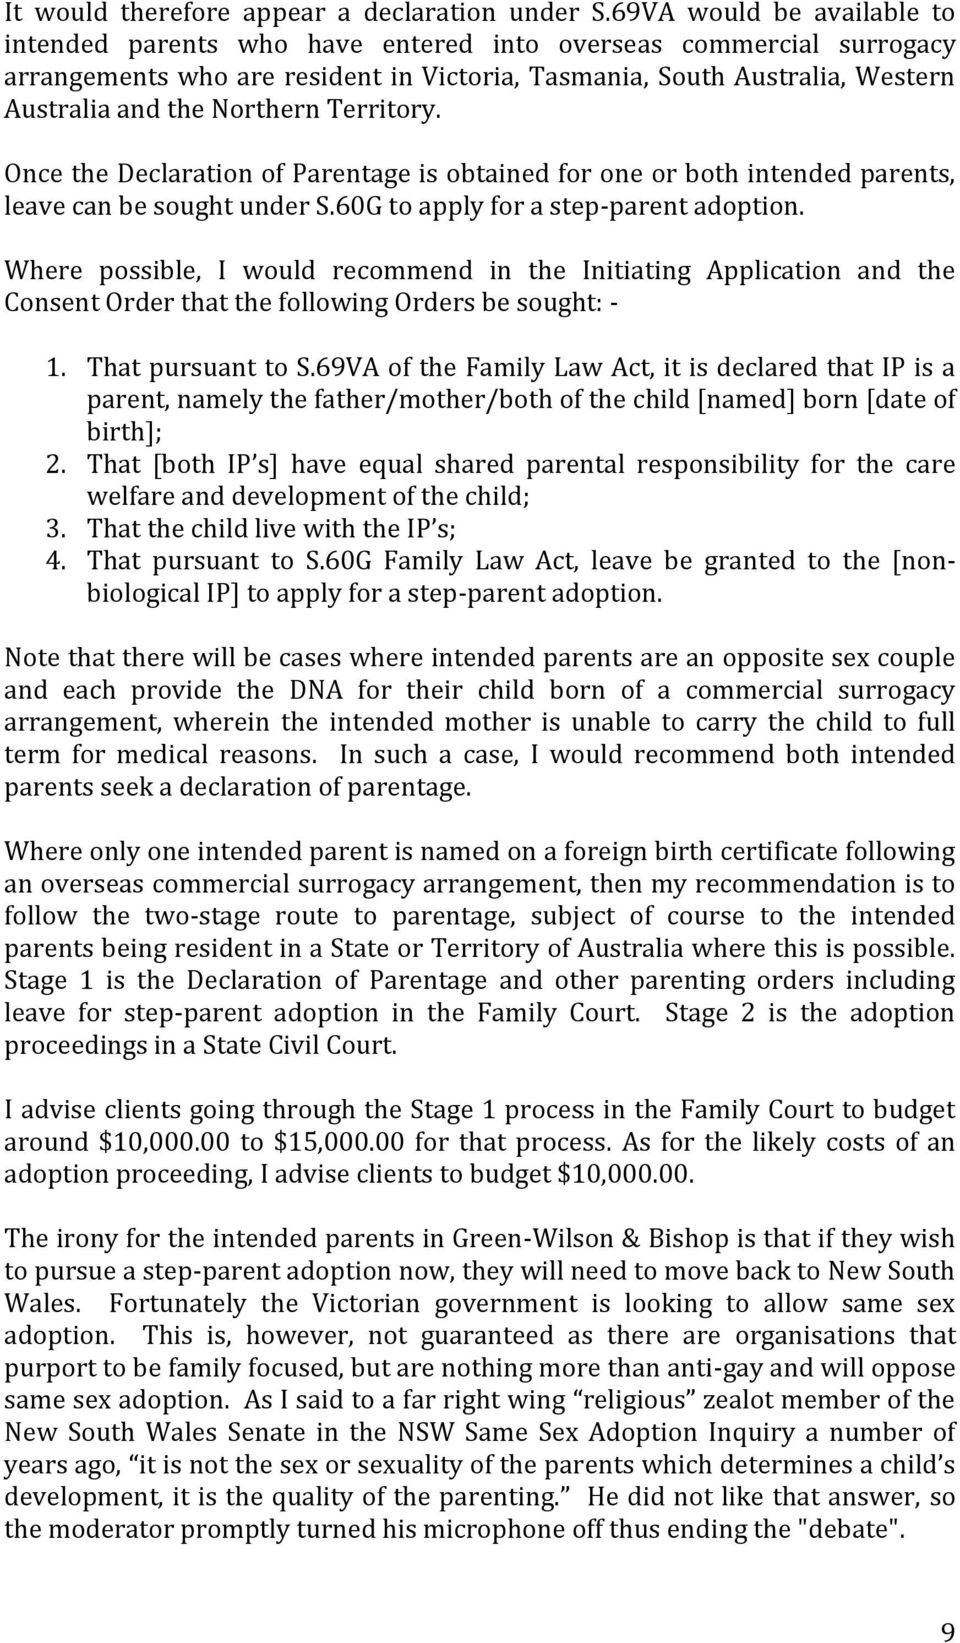 Northern Territory. Once the Declaration of Parentage is obtained for one or both intended parents, leave can be sought under S.60G to apply for a step-parent adoption.